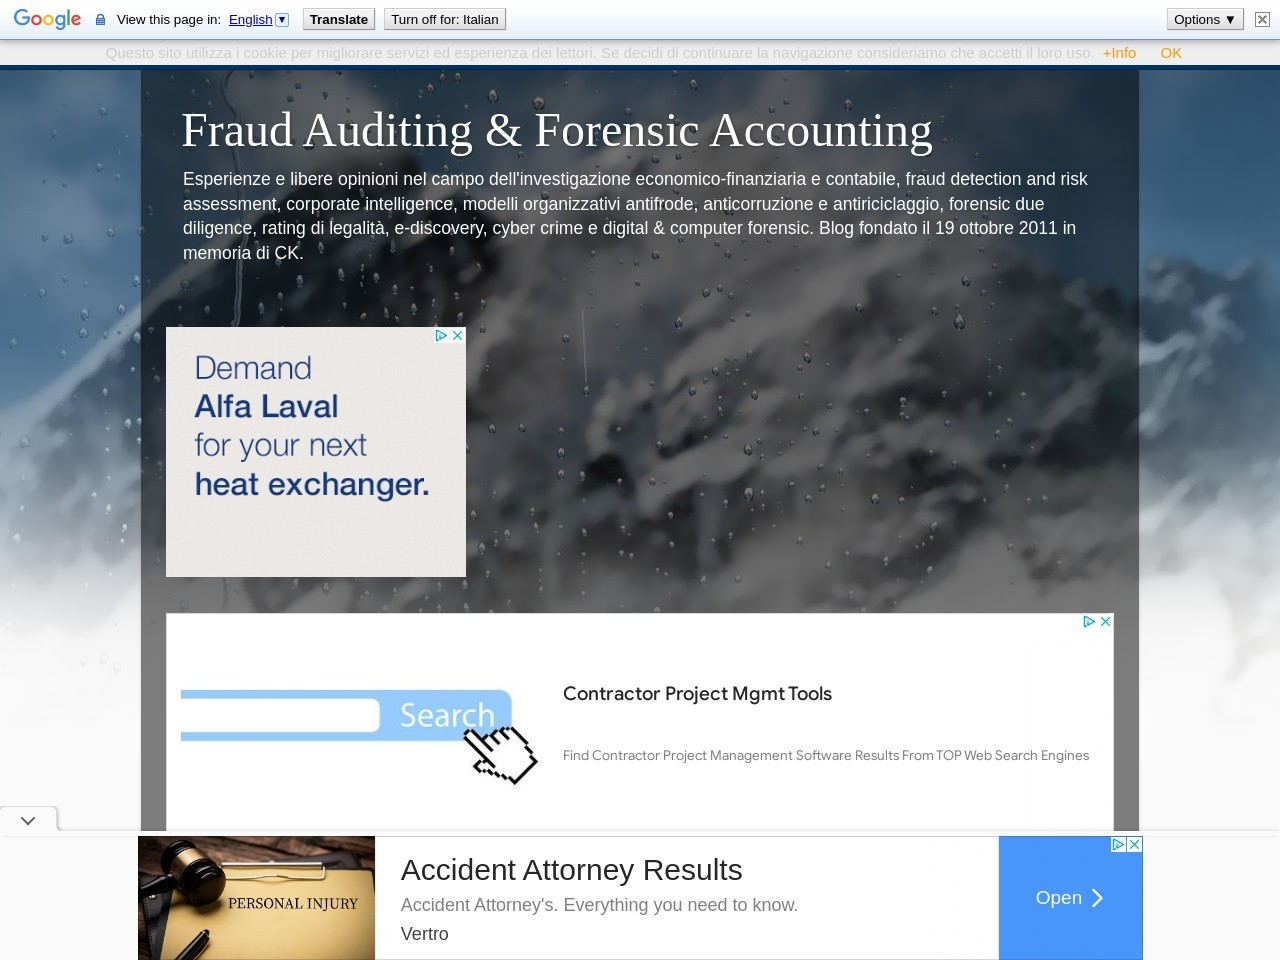 fraud-auditing-forensic-accounting